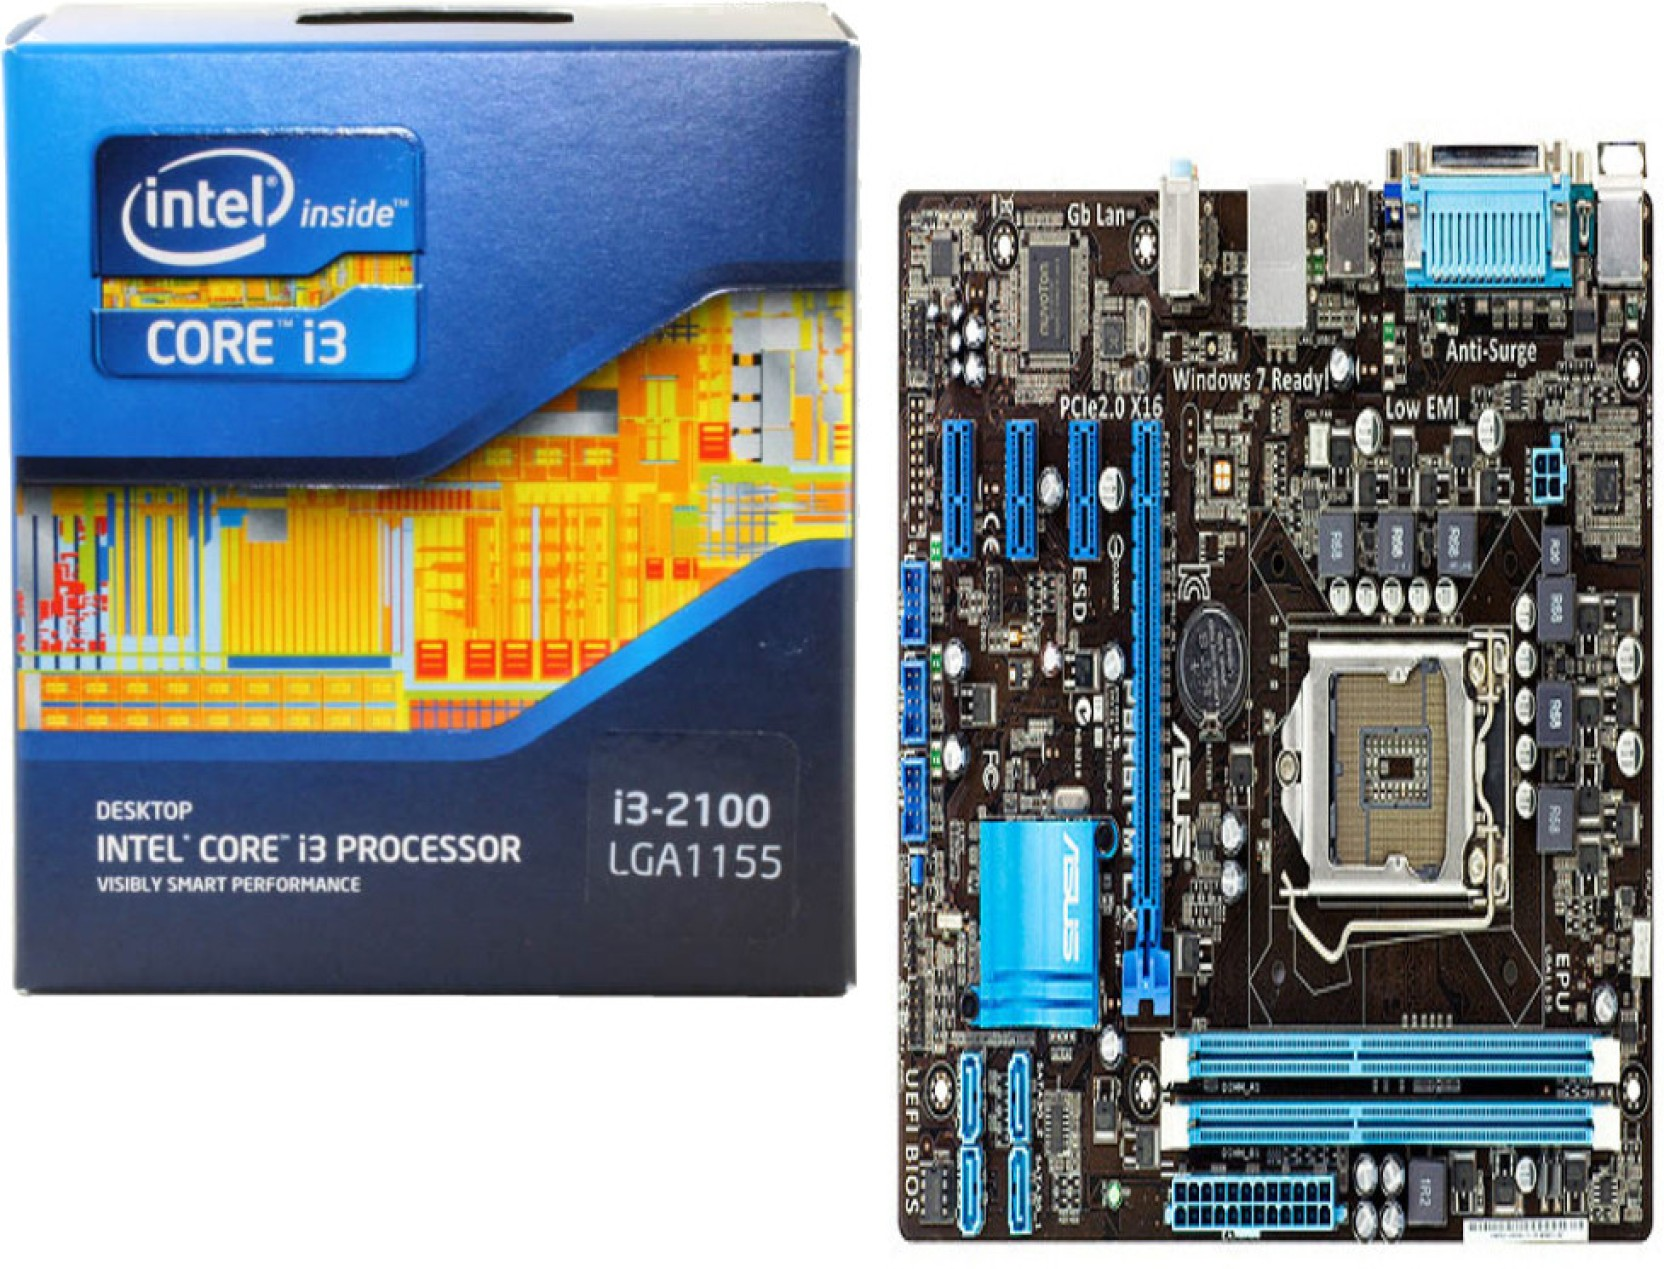 Intel Asus 31 Ghz Fclga1155 Core I3 2100 Processor And Electric Circuit Board Tshirt Share